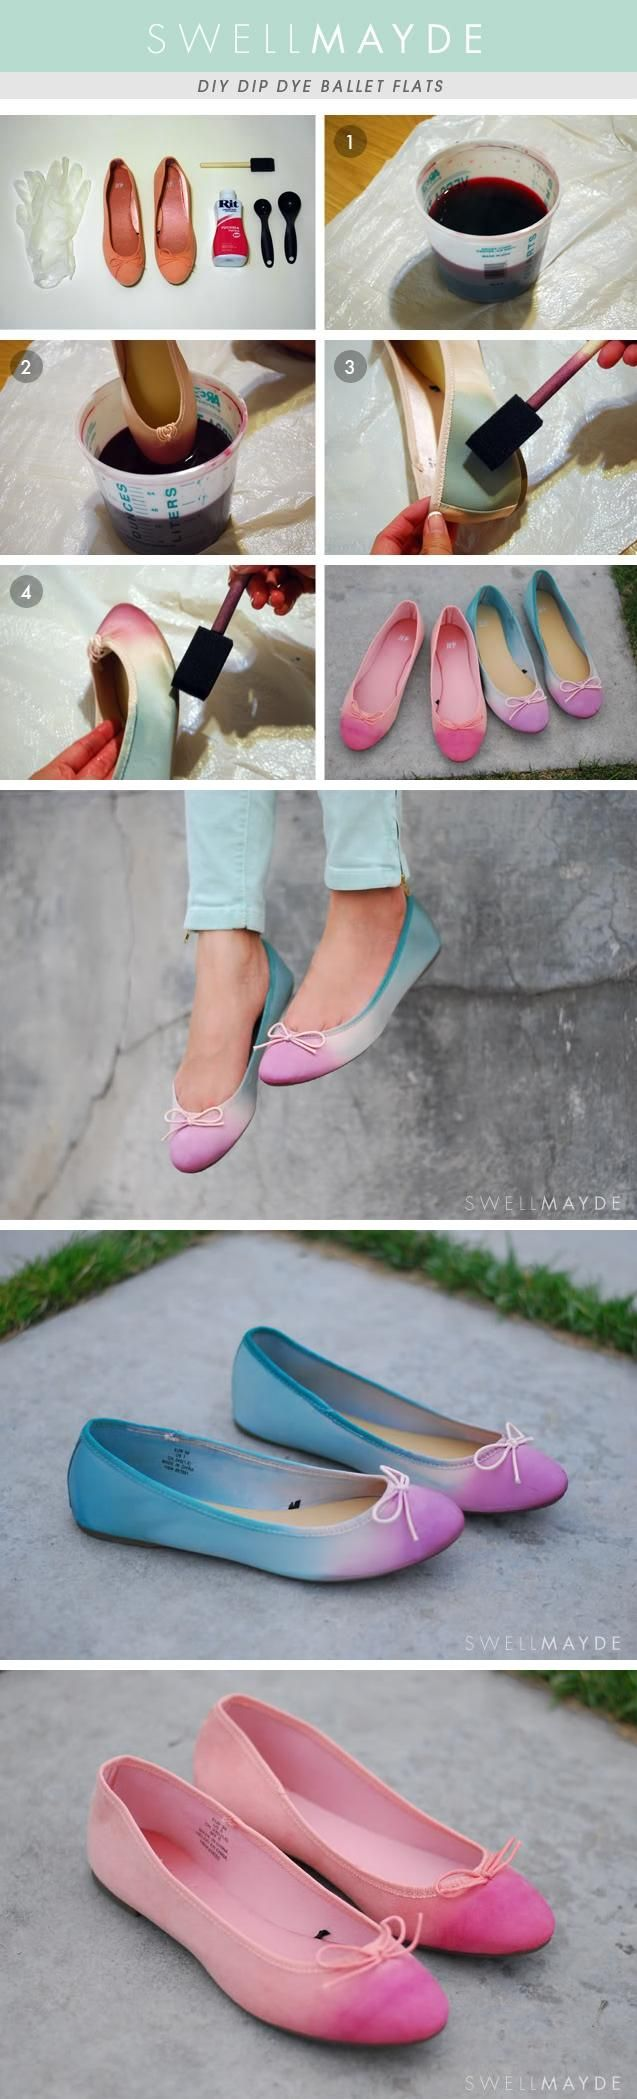 diy dip dye ombre ballet flats maybe do some old ballet flats